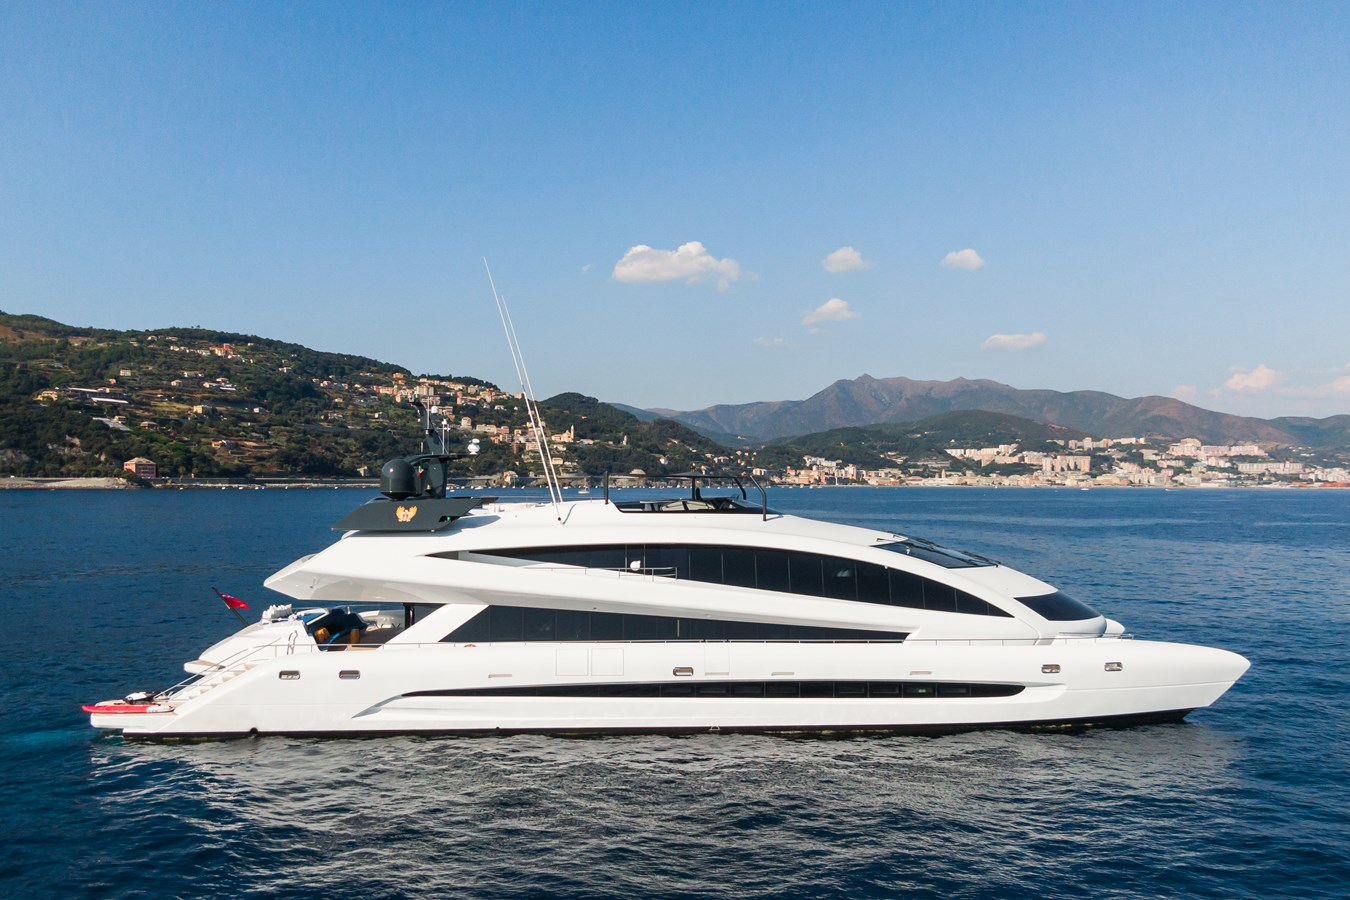 Royal Falcon One yacht for sale